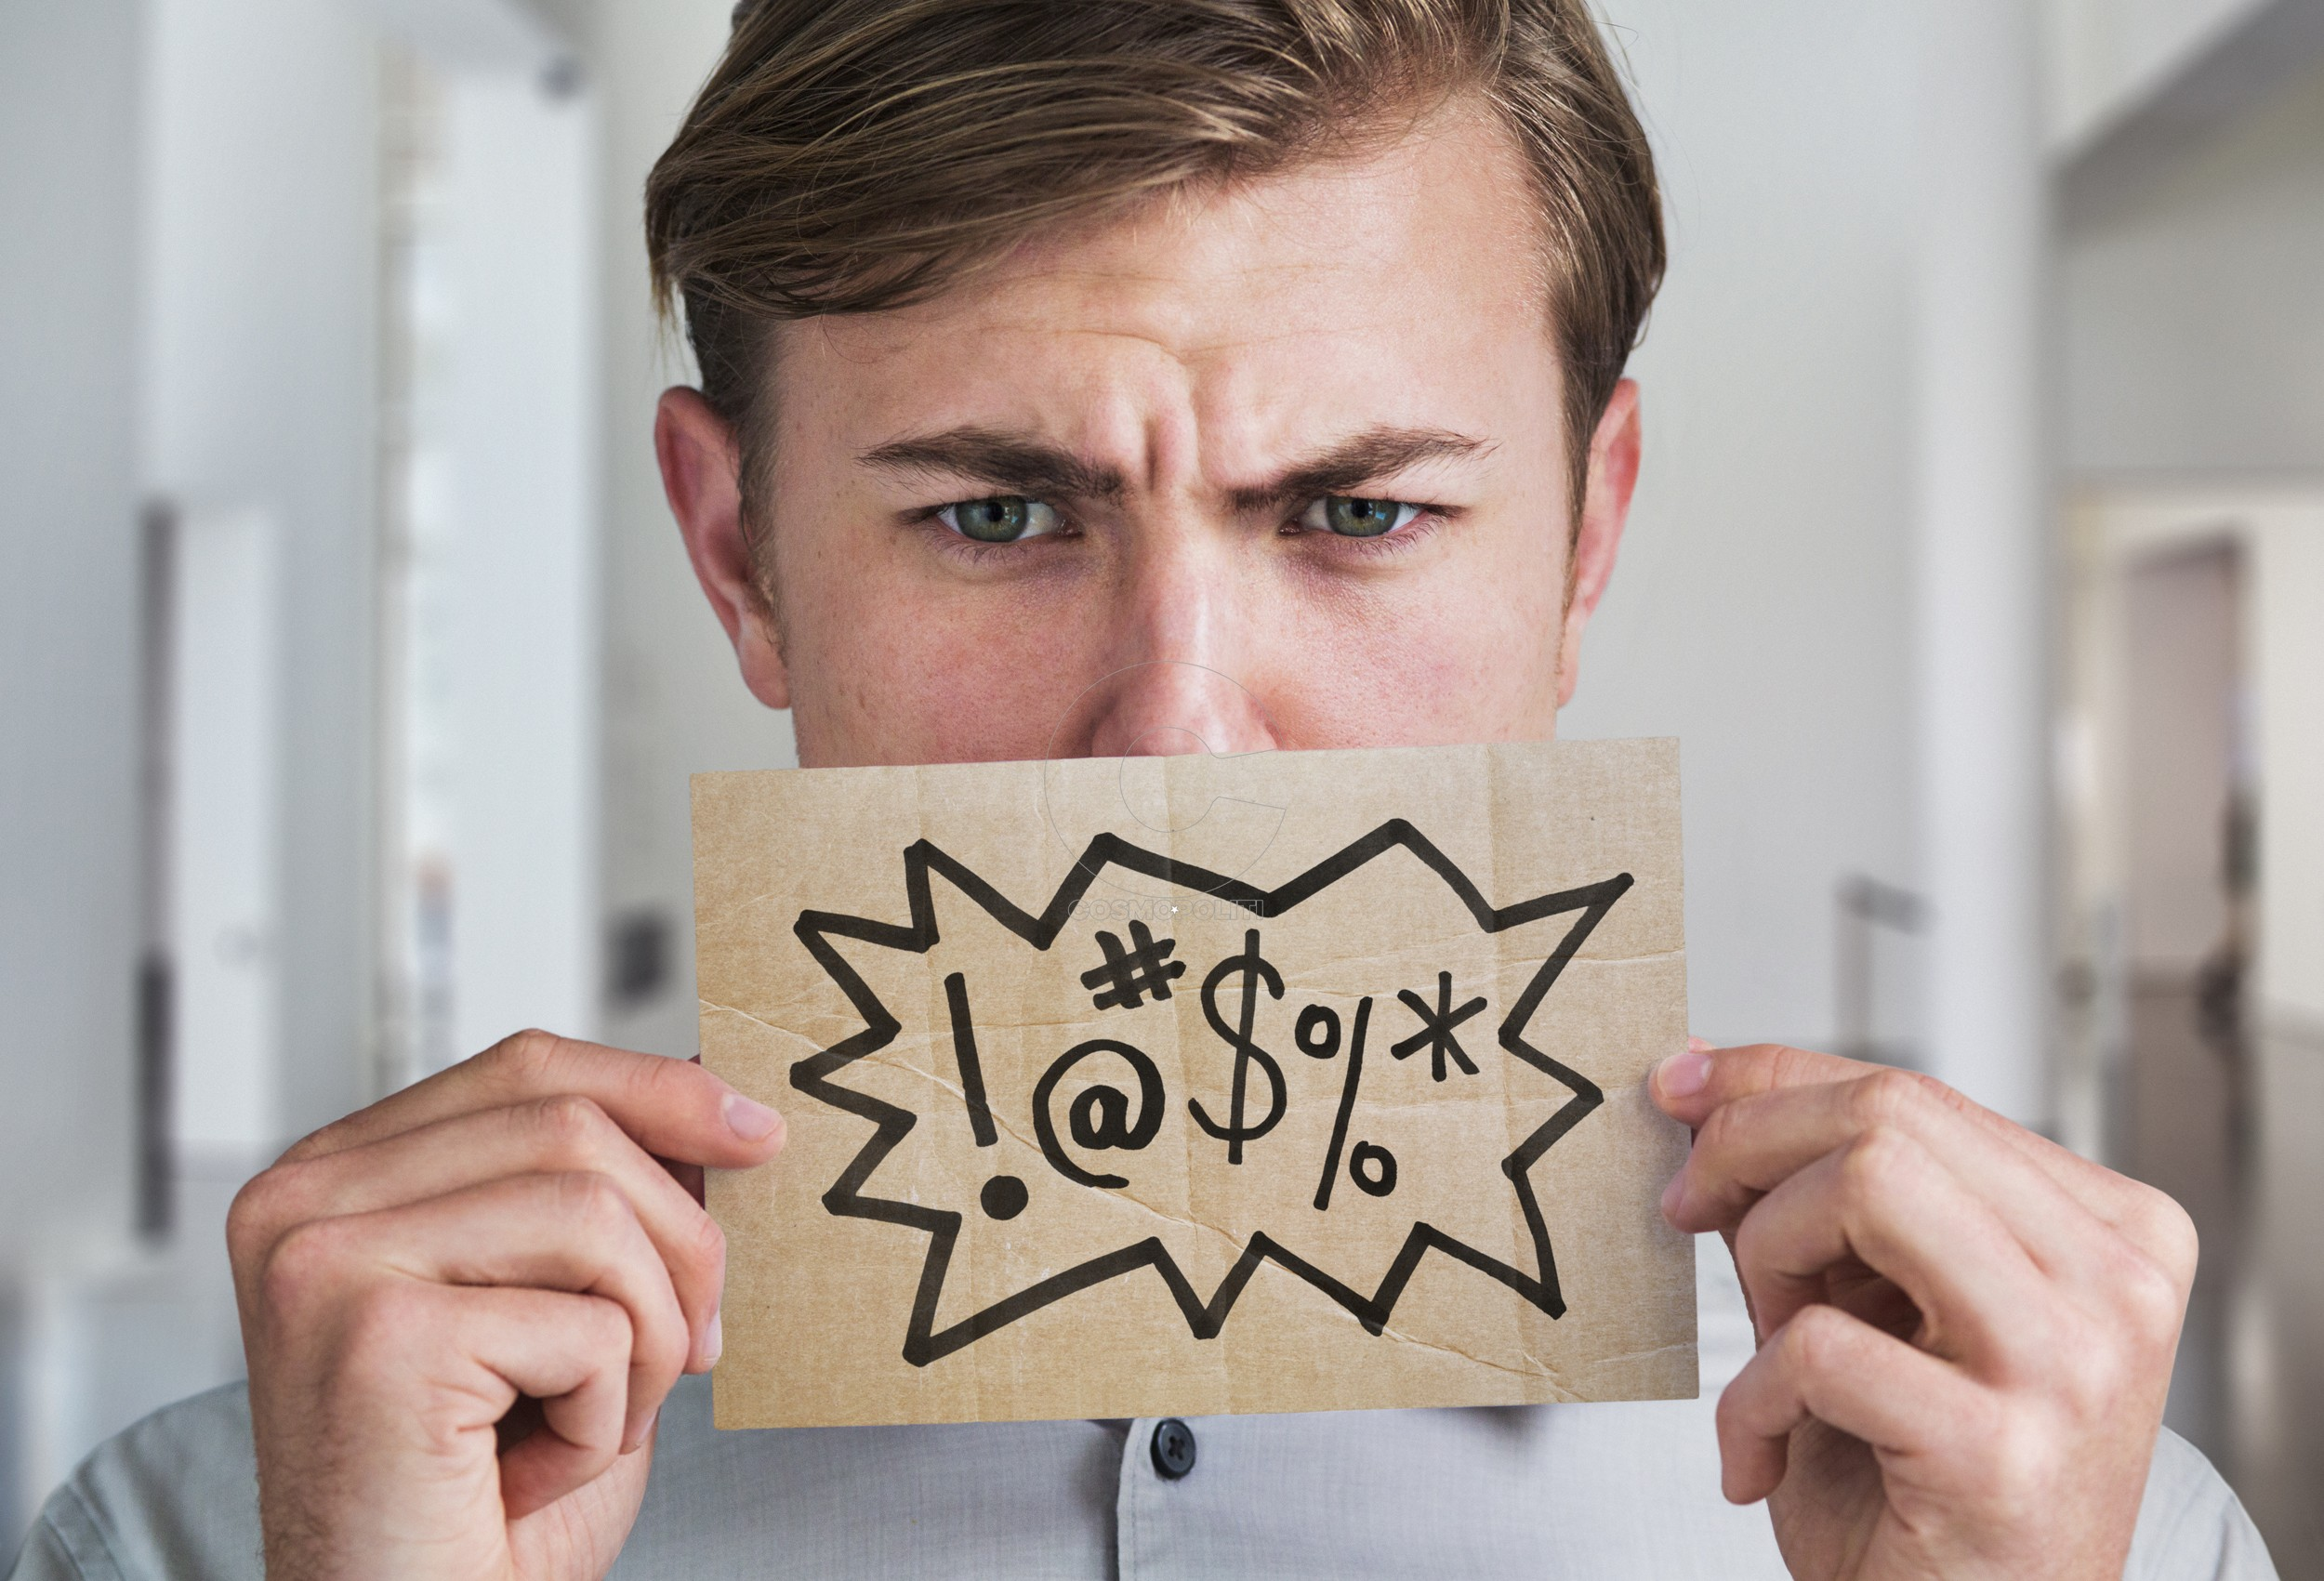 Man holding swear word sign in front of his mouth